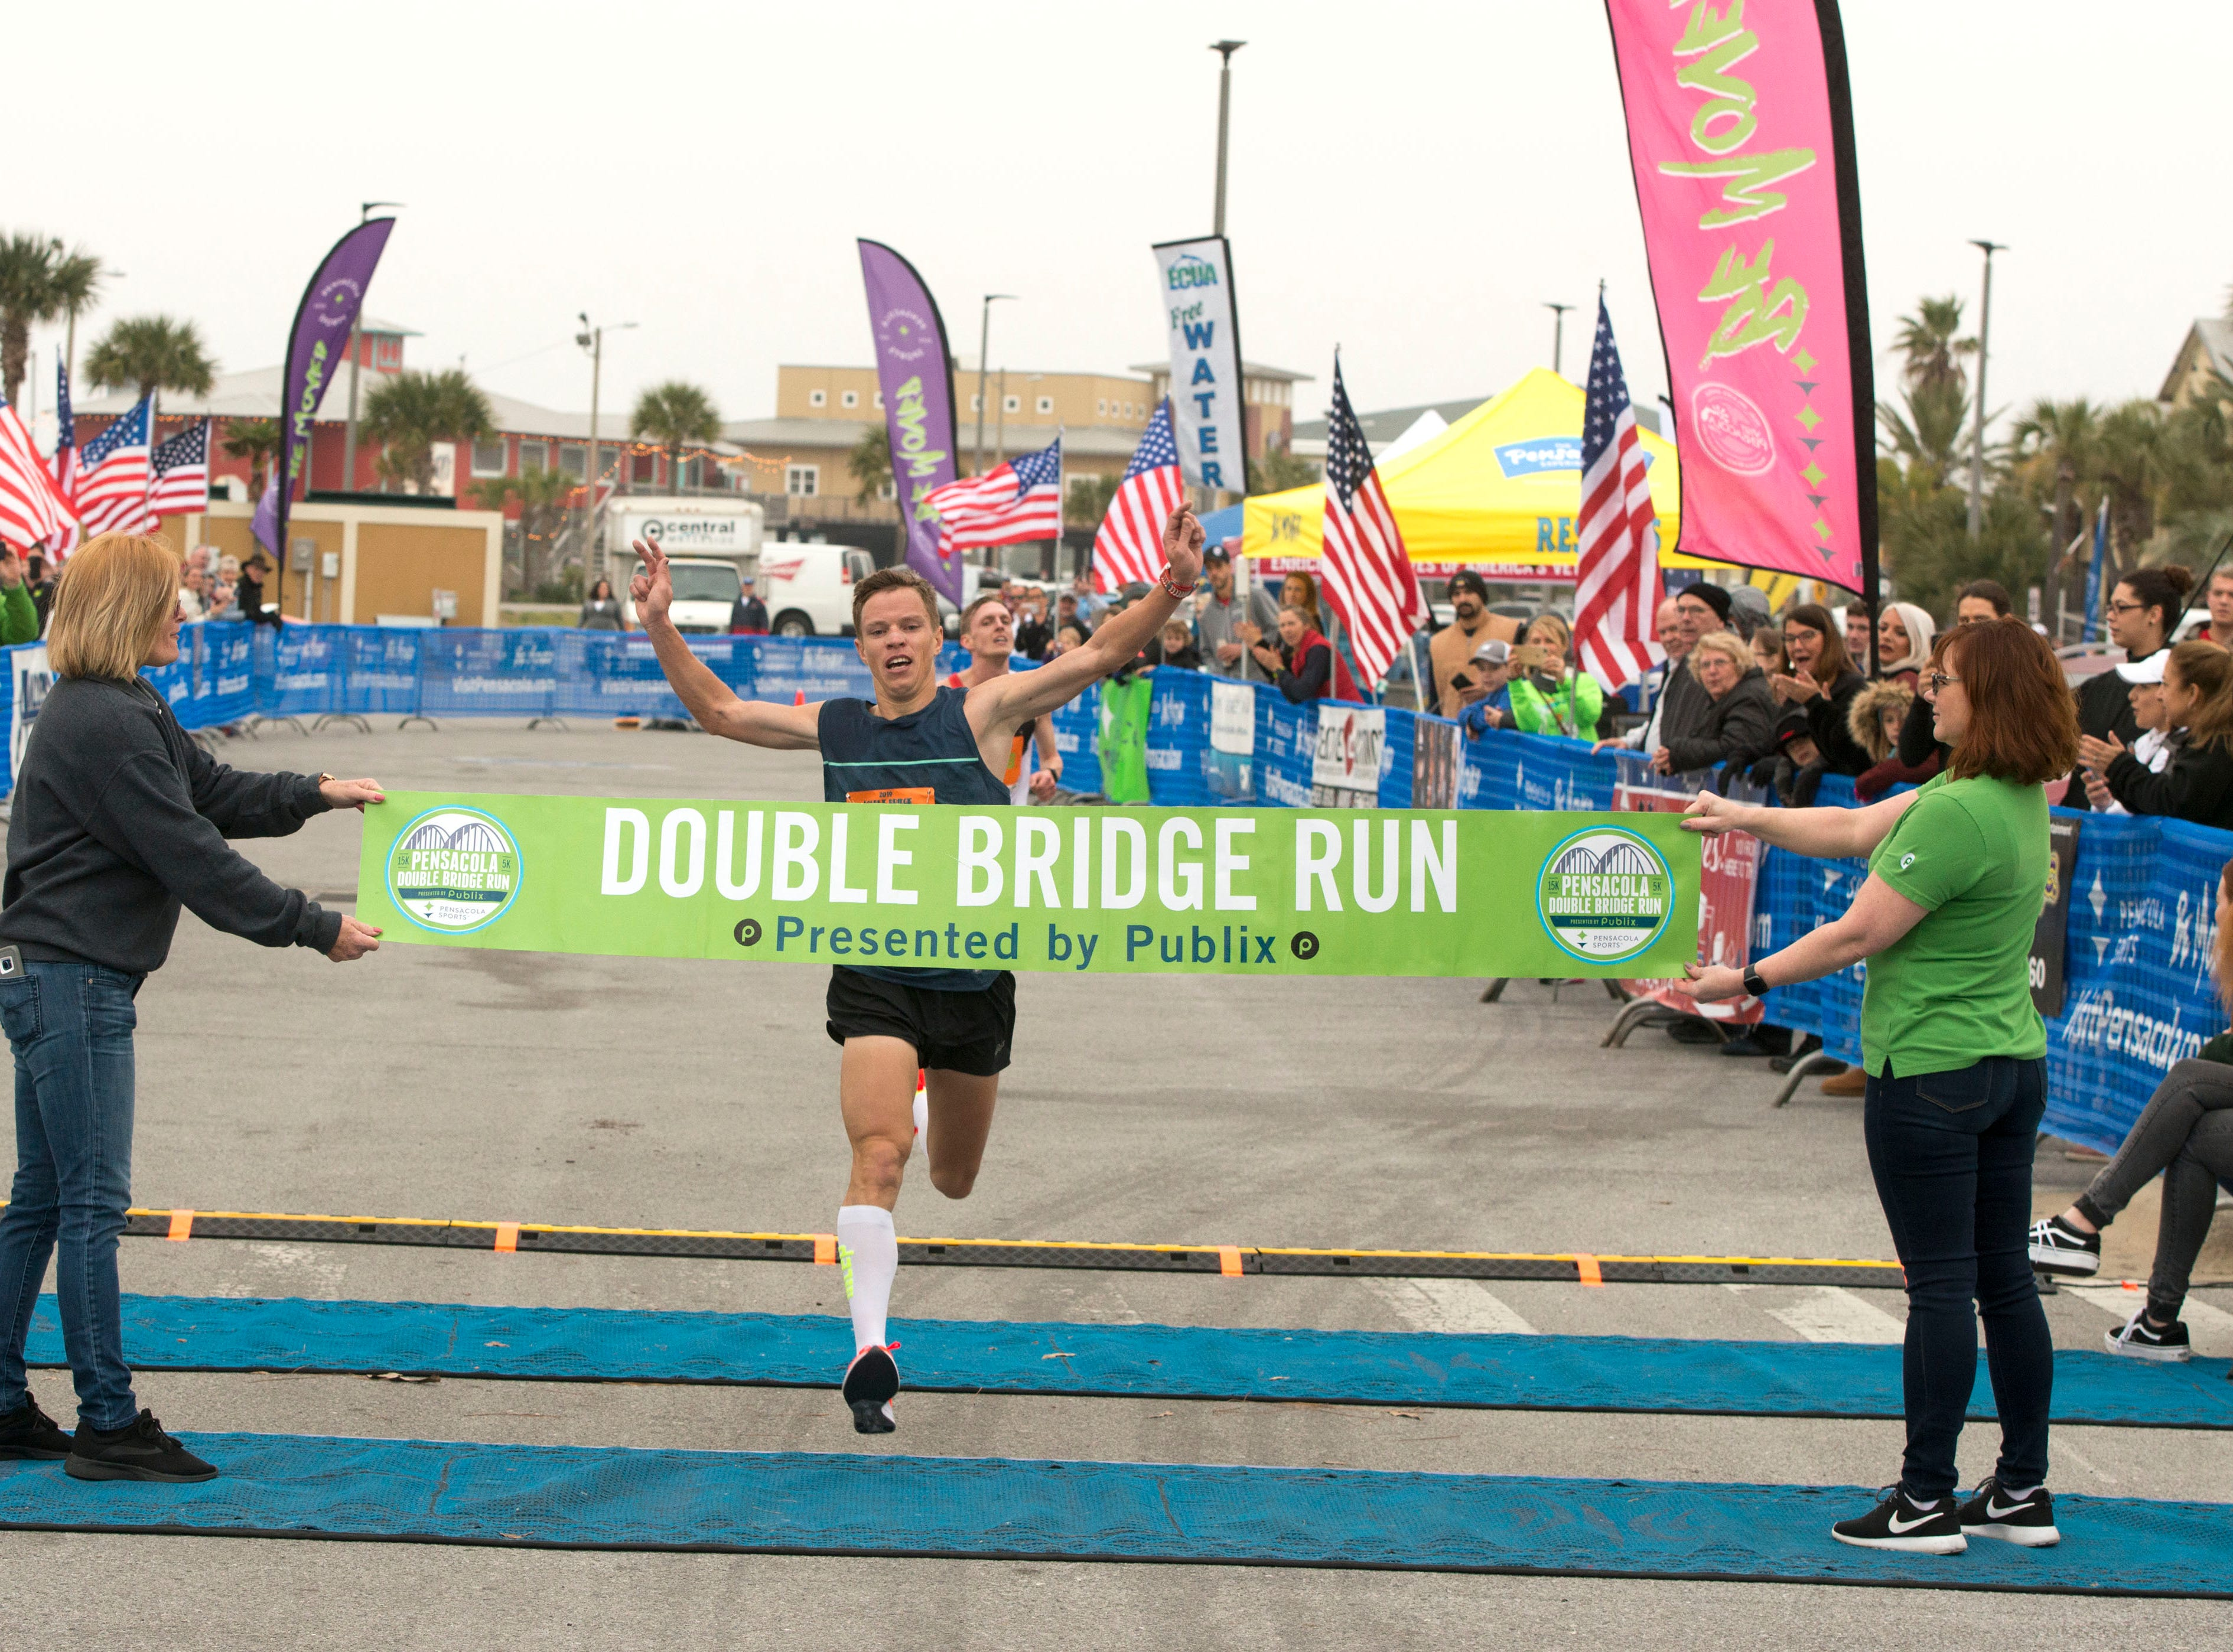 Sergey Zyryanov crosses the finish line as the first finisher of the 15k Saturday, February 2, 2019 during the Pensacola Double Bridge Run presented by Publix. The 15K carries runners over two bridges, across Pensacola Bay and Santa Rosa Sound. It will run from downtown Pensacola with a tour that includes the historic district, and picturesque Bayfront Parkway, a run through Gulf Breeze, and onto Pensacola Beach. The 5K invites both runners and walkers to travel from Gulf Breeze to beautiful Pensacola Beach on Santa Rosa Island and the Gulf Islands Seashore.